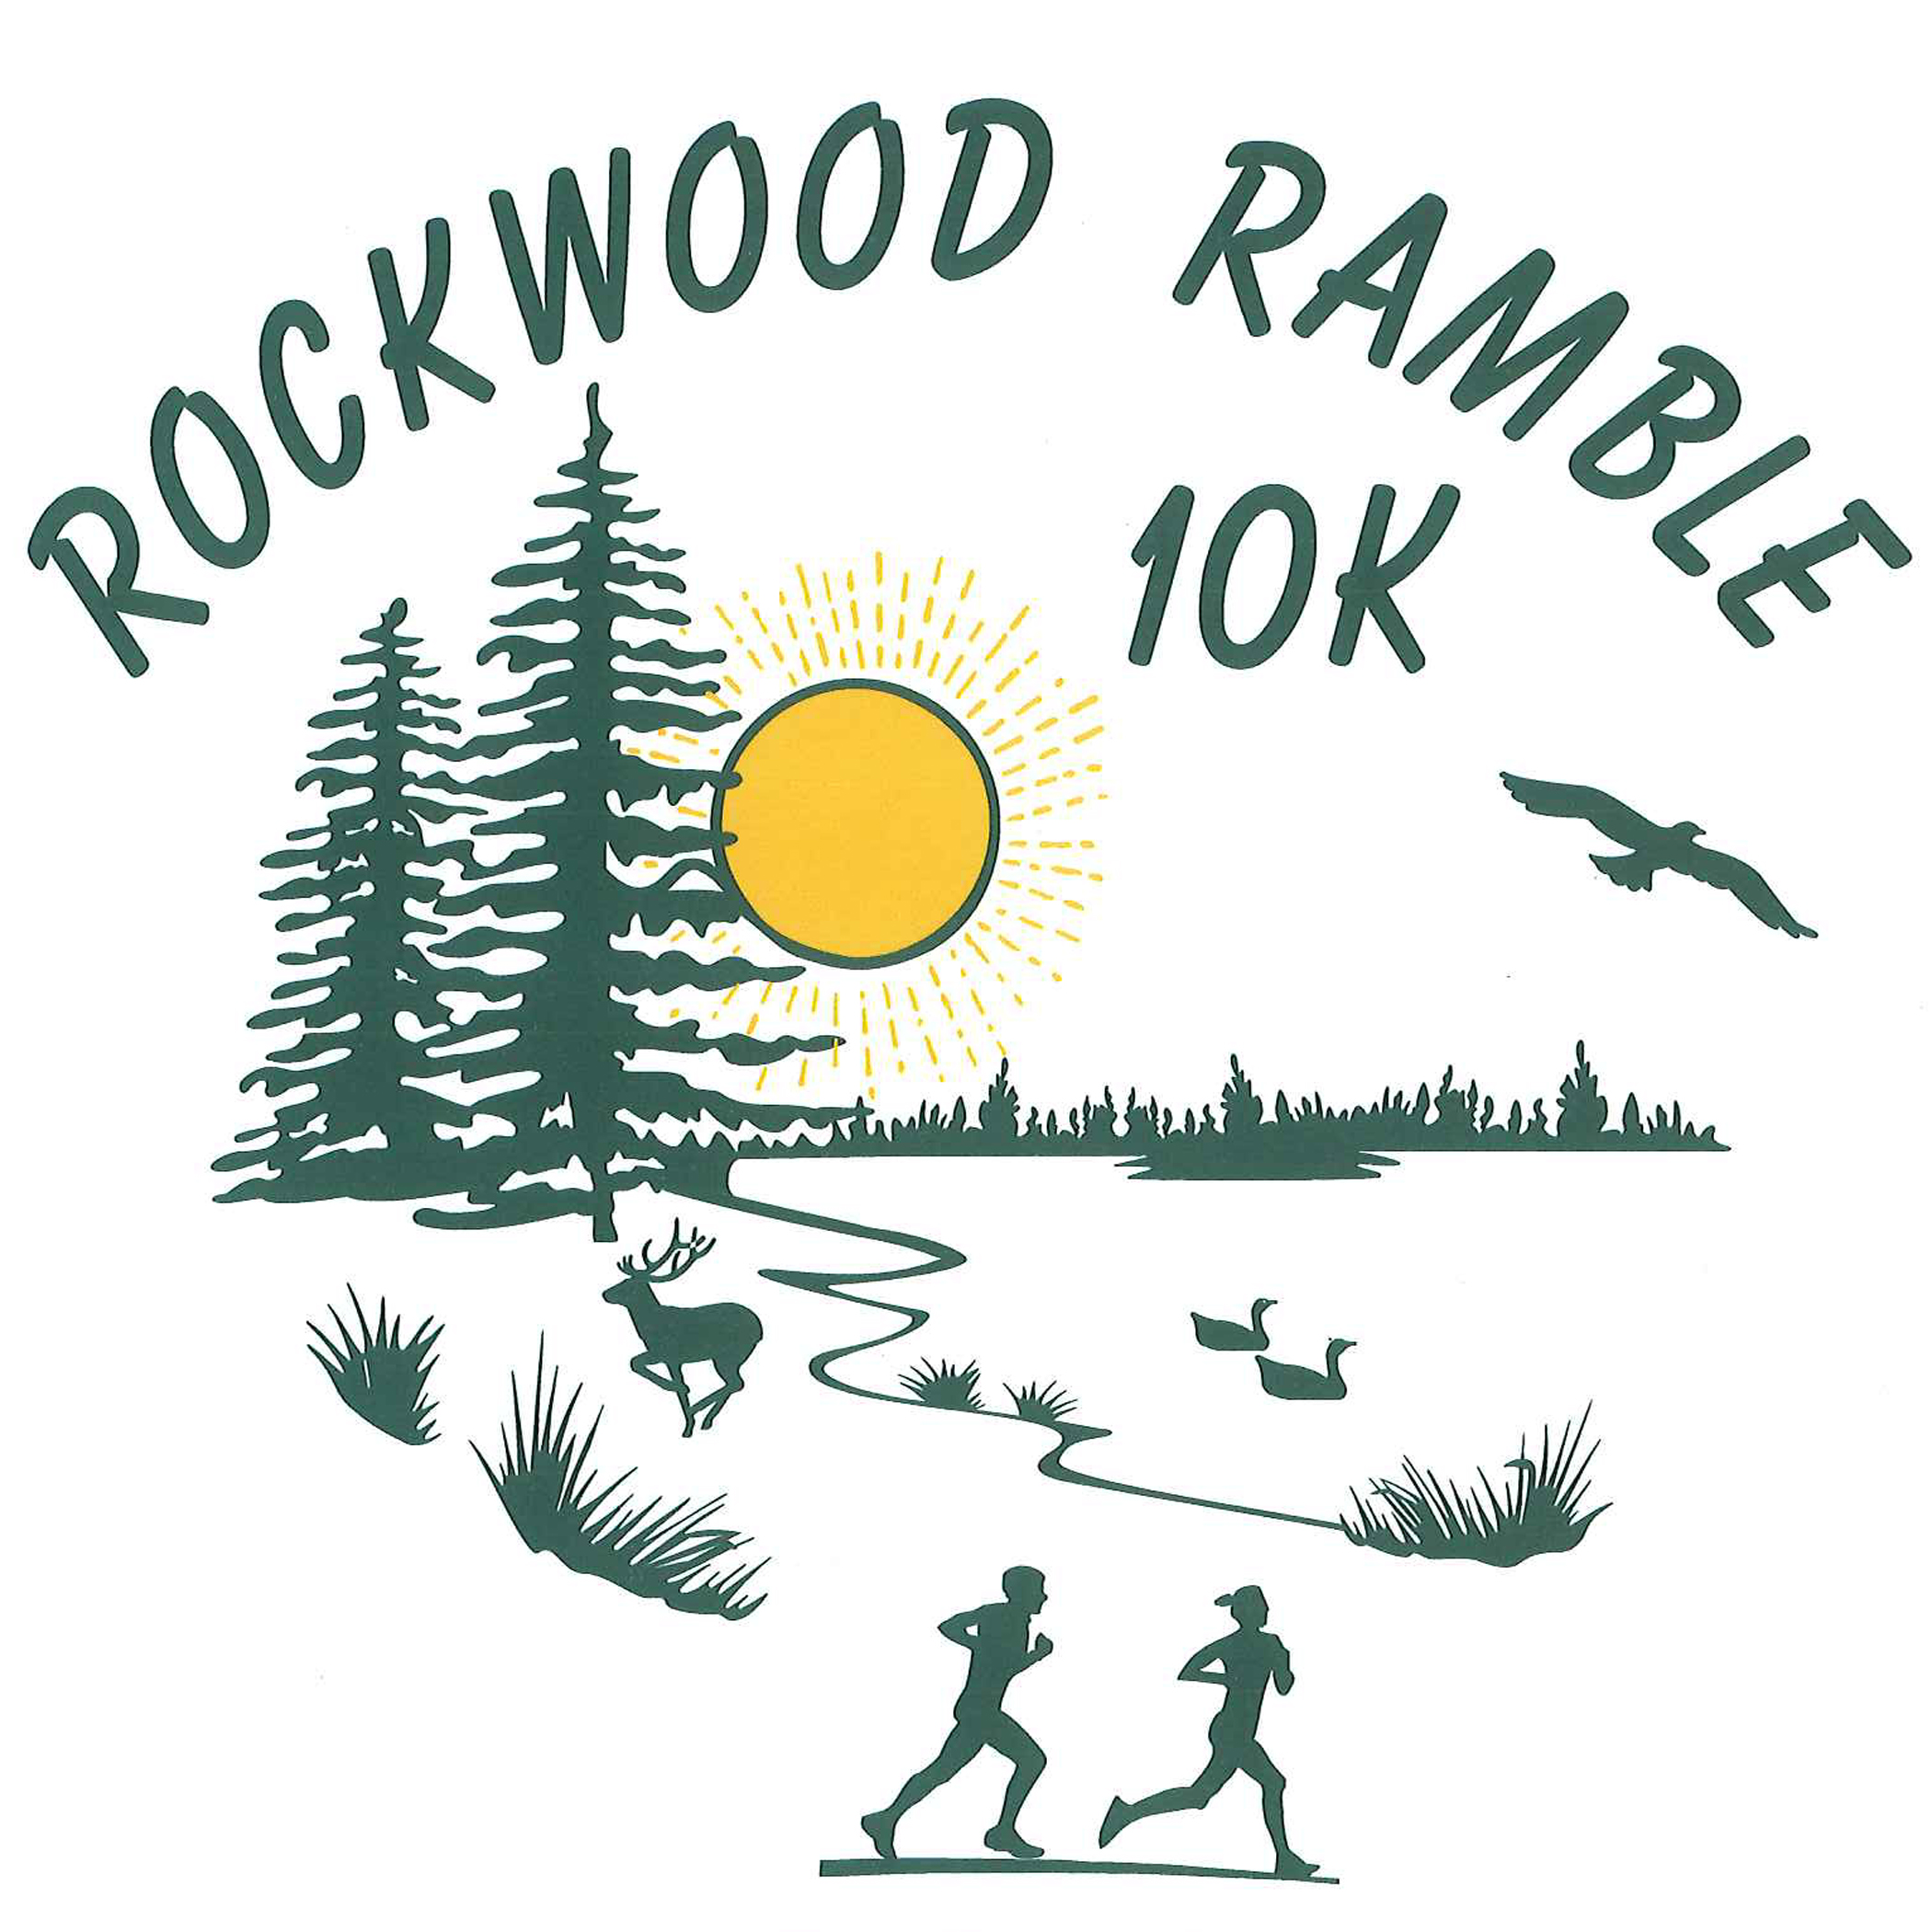 Rockwood Ramble 10K - June